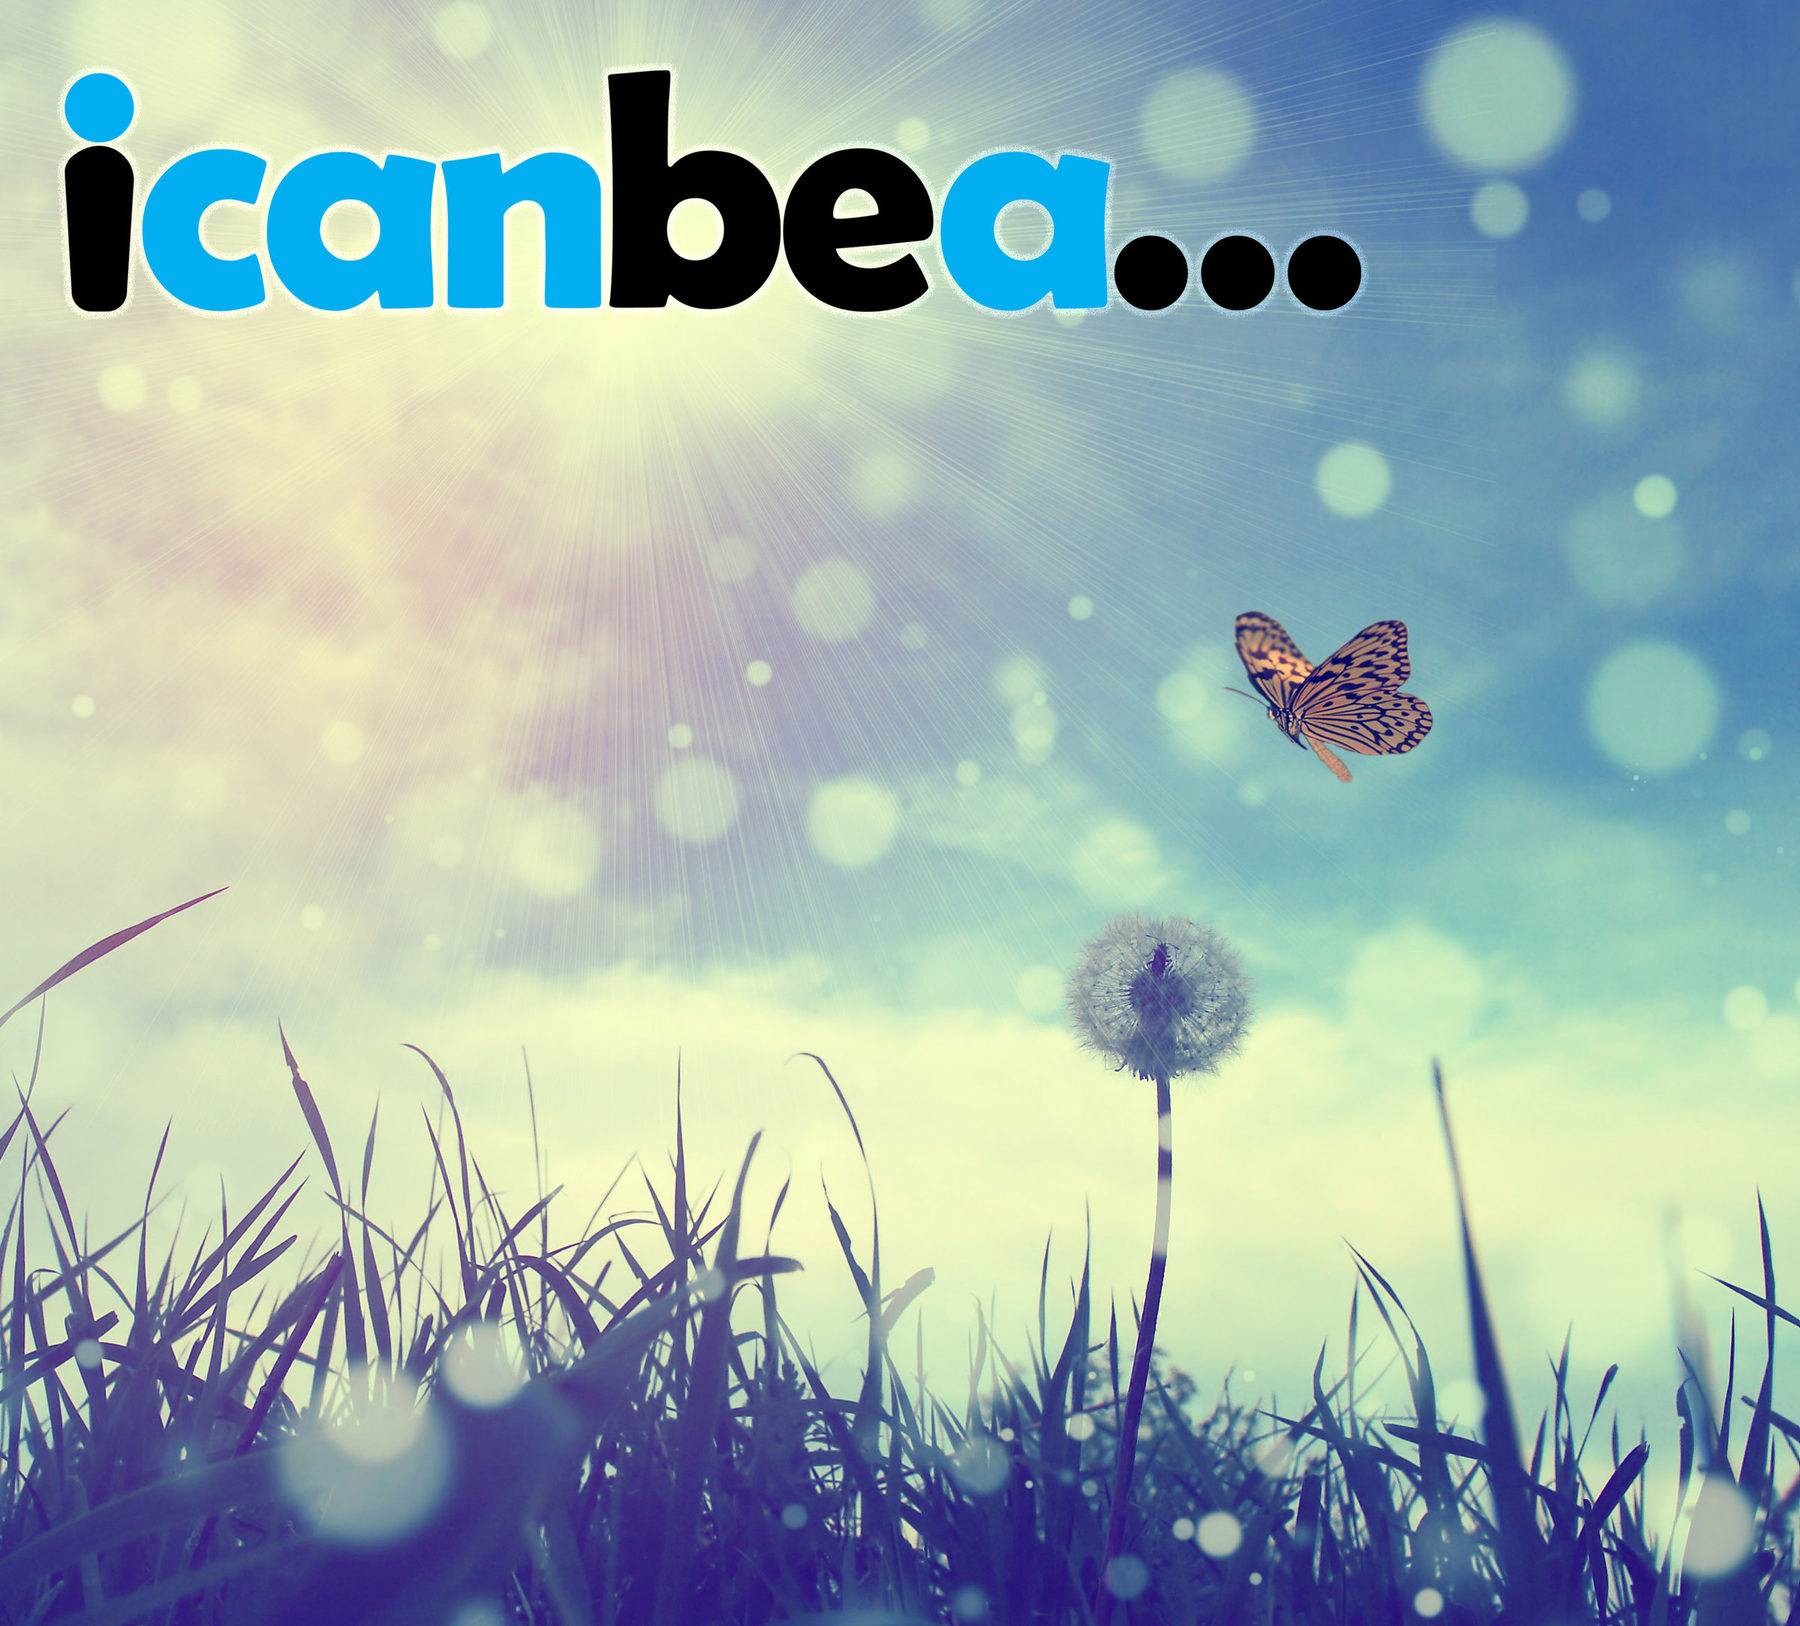 Legacy Post Image (icanbea... Logo and Butterfly)